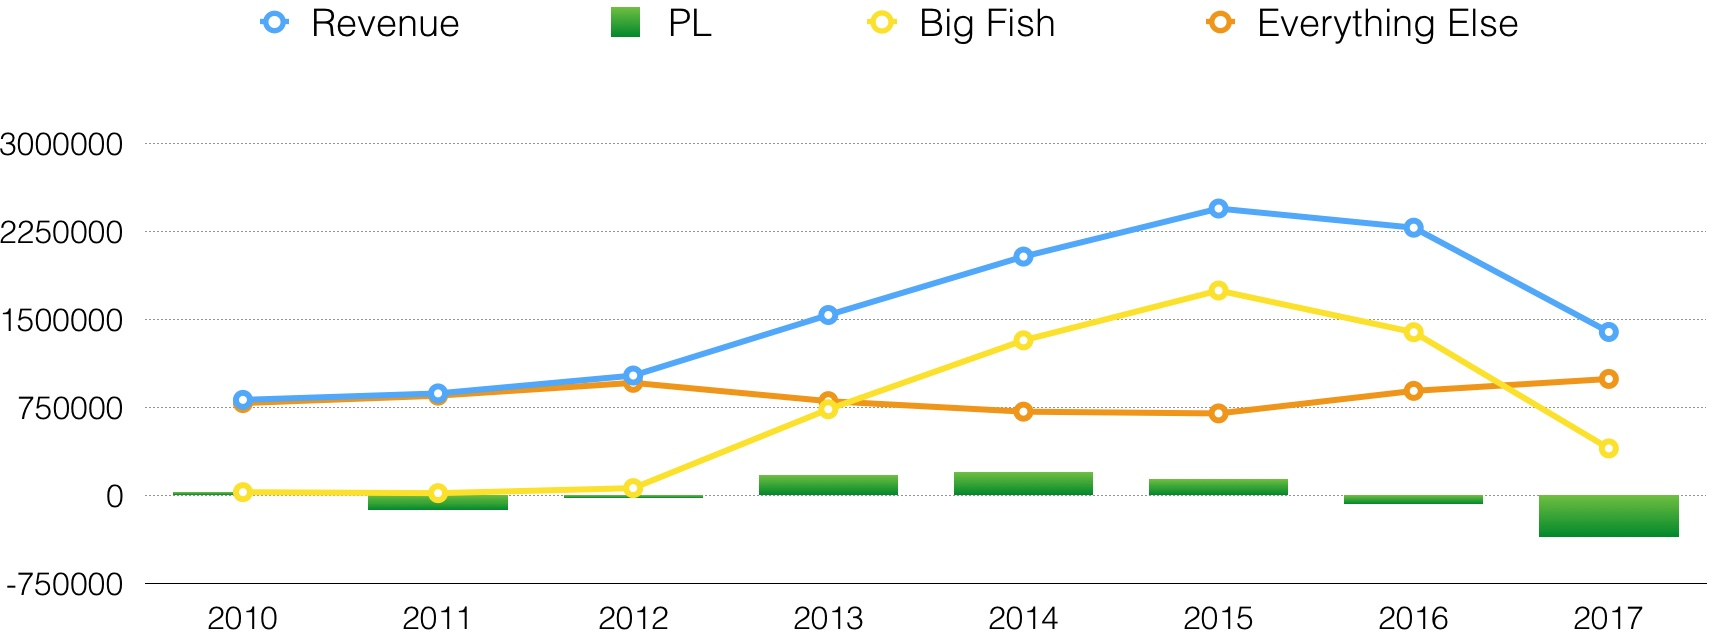 Big+Fish+Graph.jpg